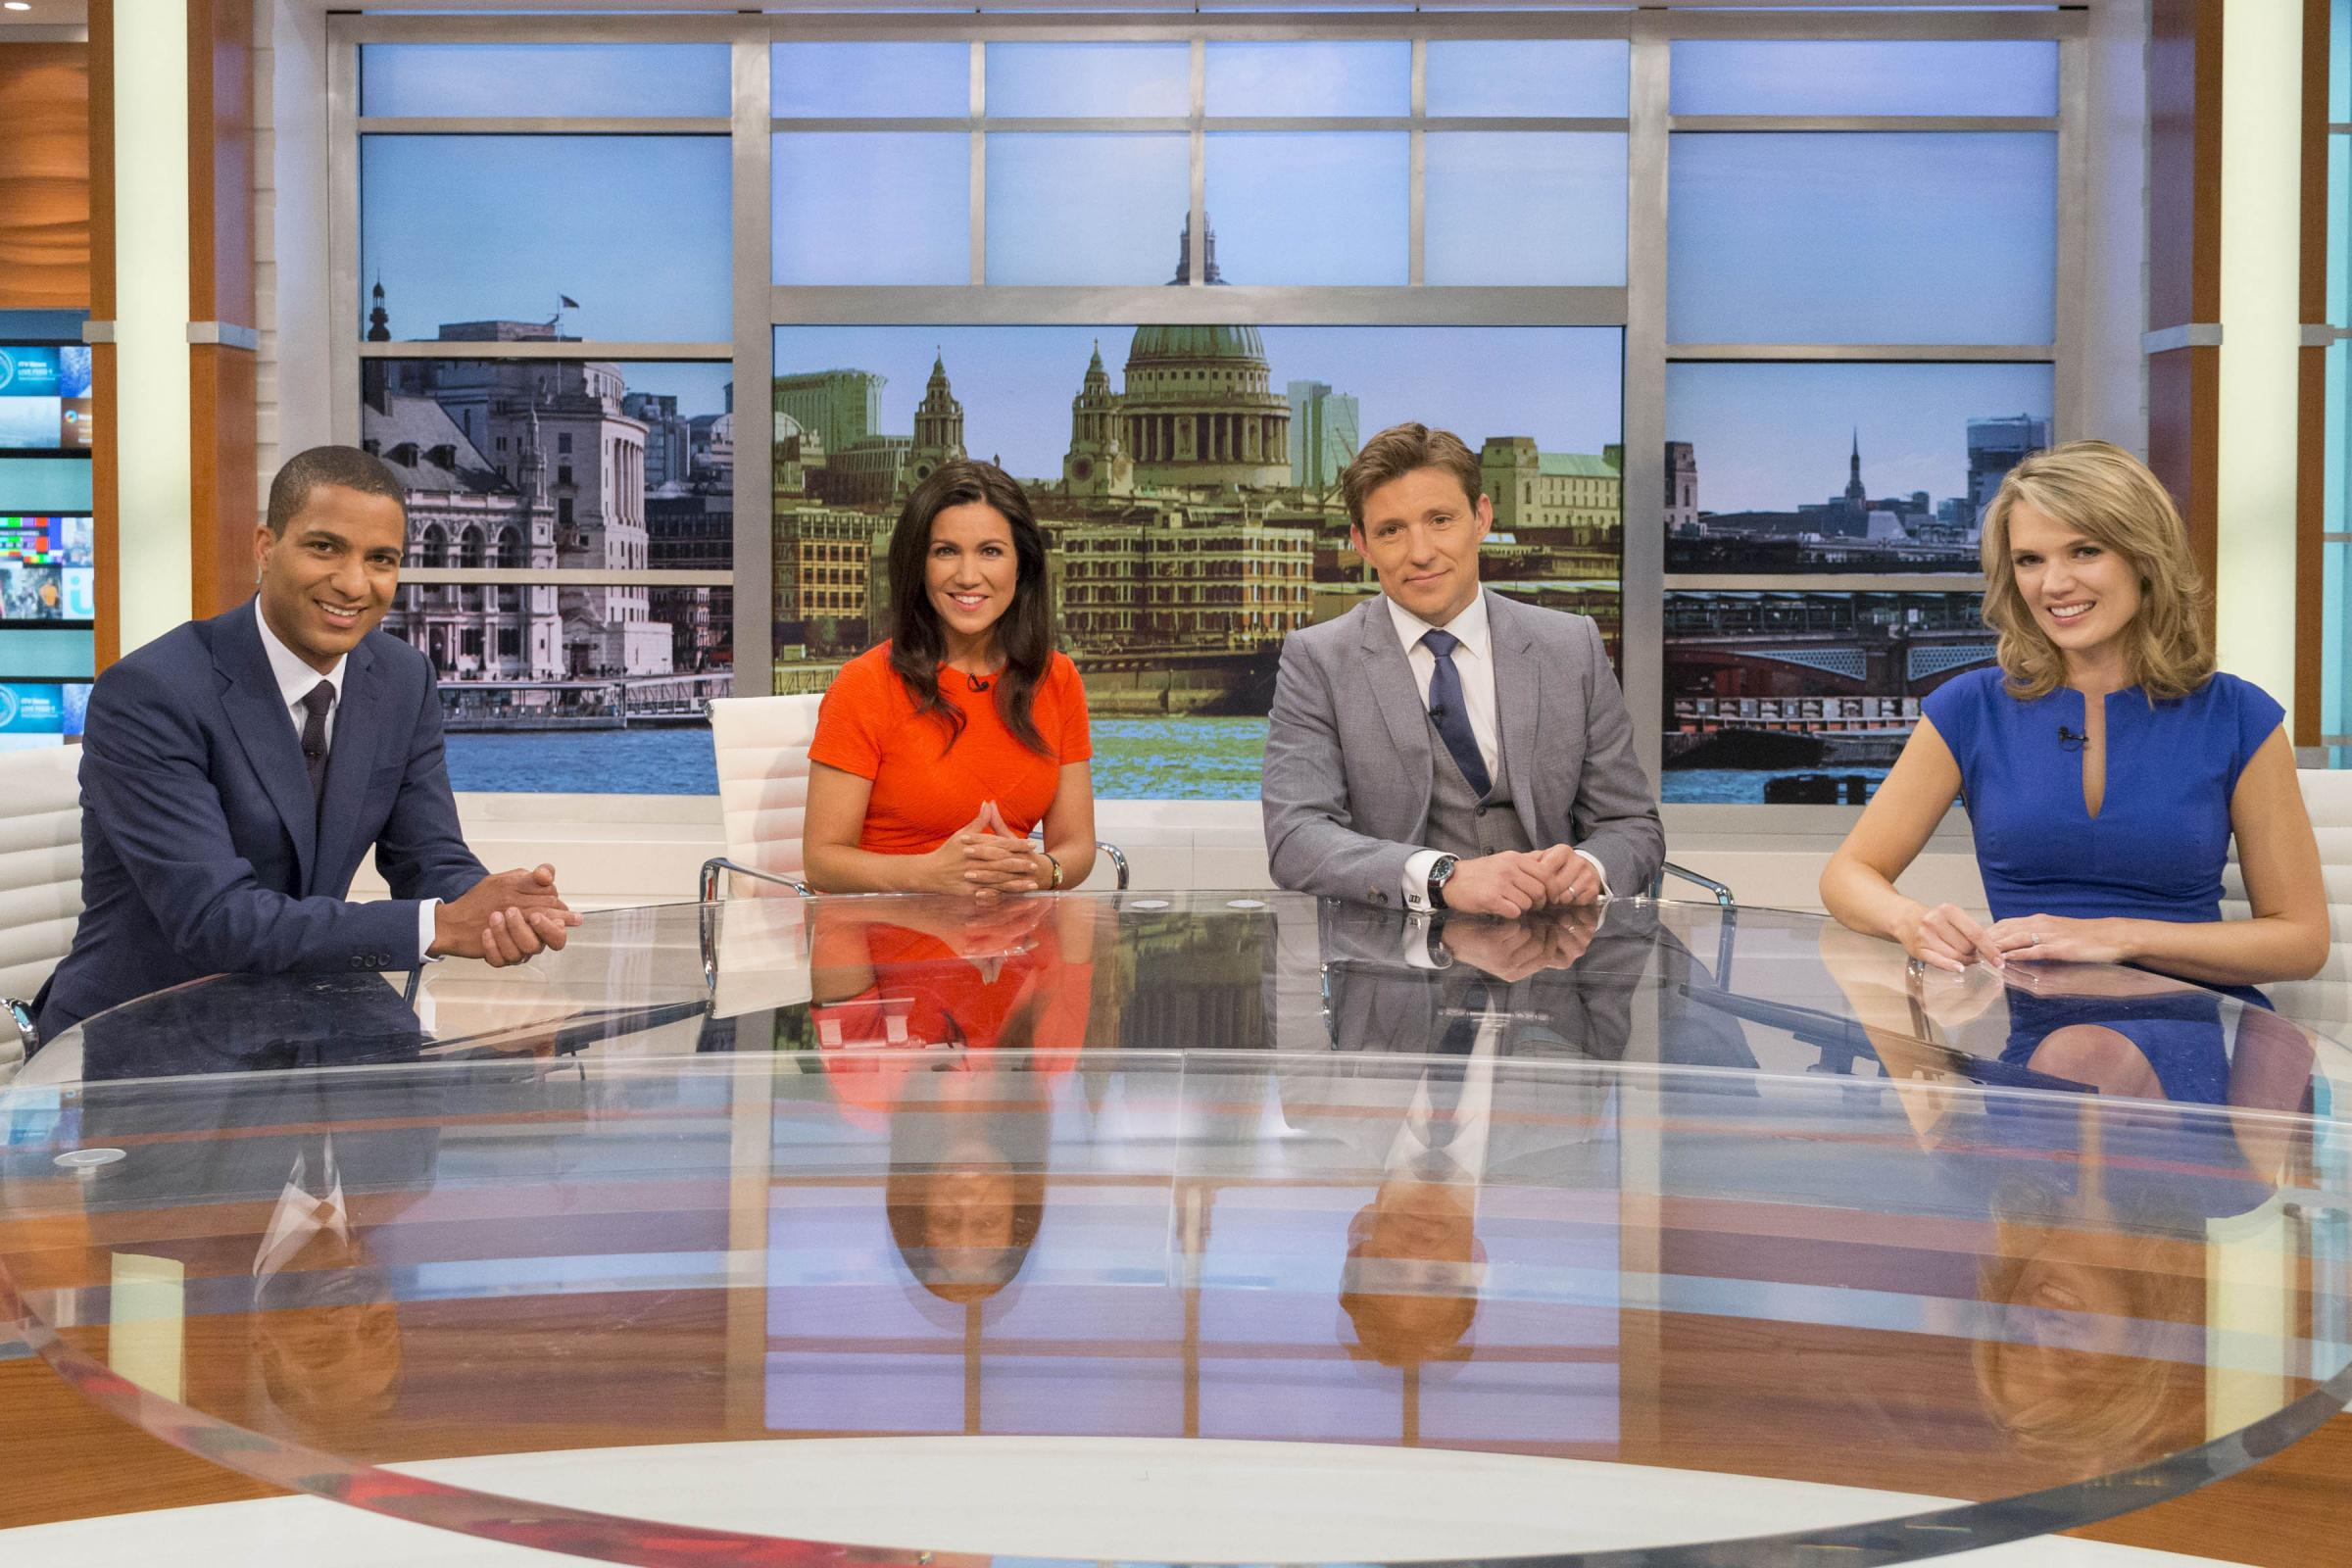 EMBARGOED: FOR PUBLICATION FROM 00.01 ON SUNDAY 27th APRIL 2014 GOOD MORNING BRITAIN Launches on Monday 28th April 2014 on ITV at 6am  Pictured: The shows  presenters (l-r) Sean Fletcher Susanna Reid, Ben Shephard, and Charlotte Hawkins during rehearsels